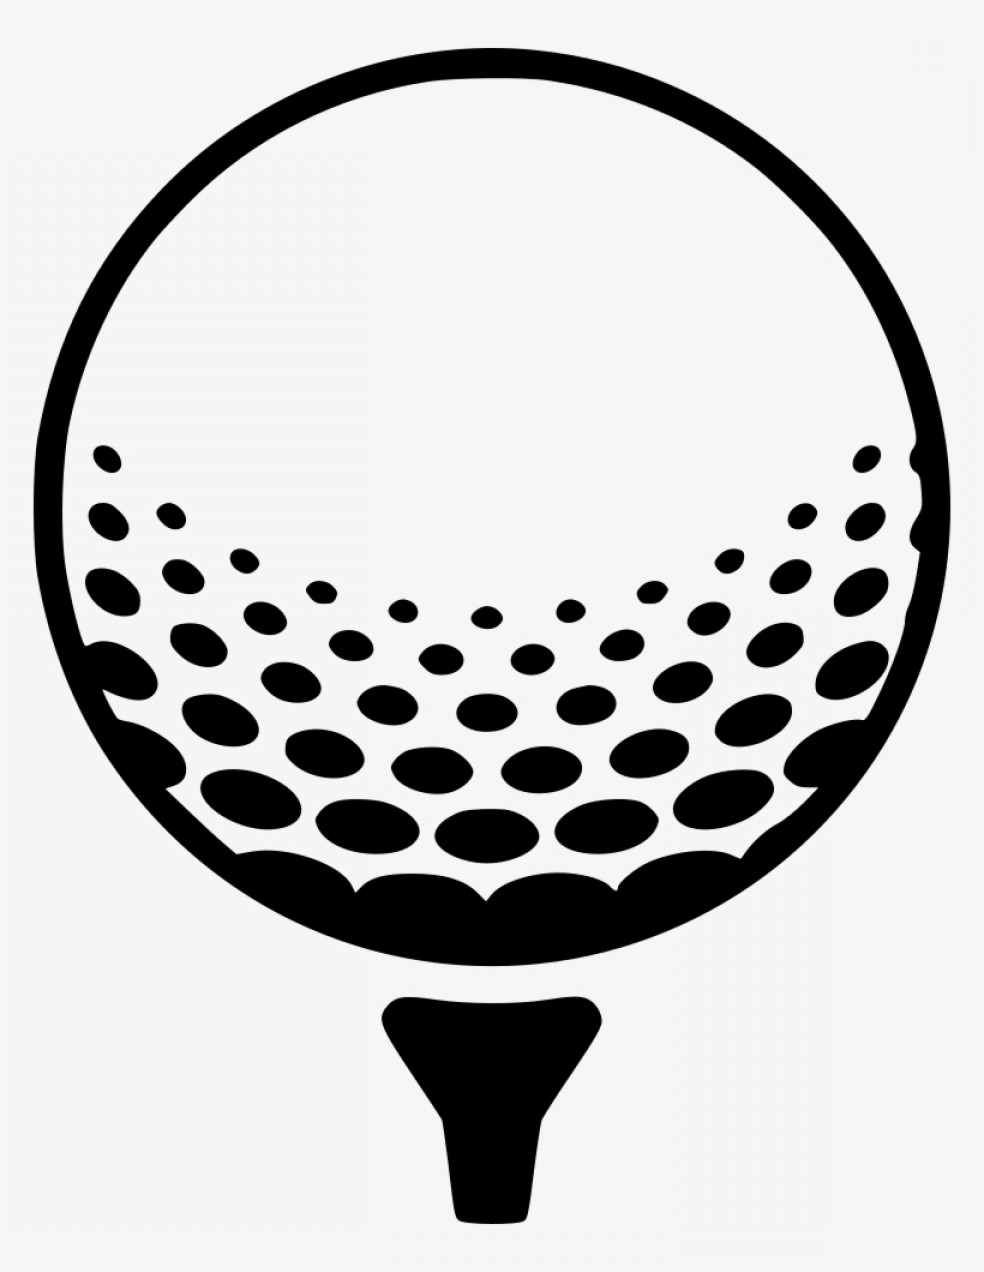 Ueraaqttfree Download Golf Ball Vector Clipart Golf Balls.